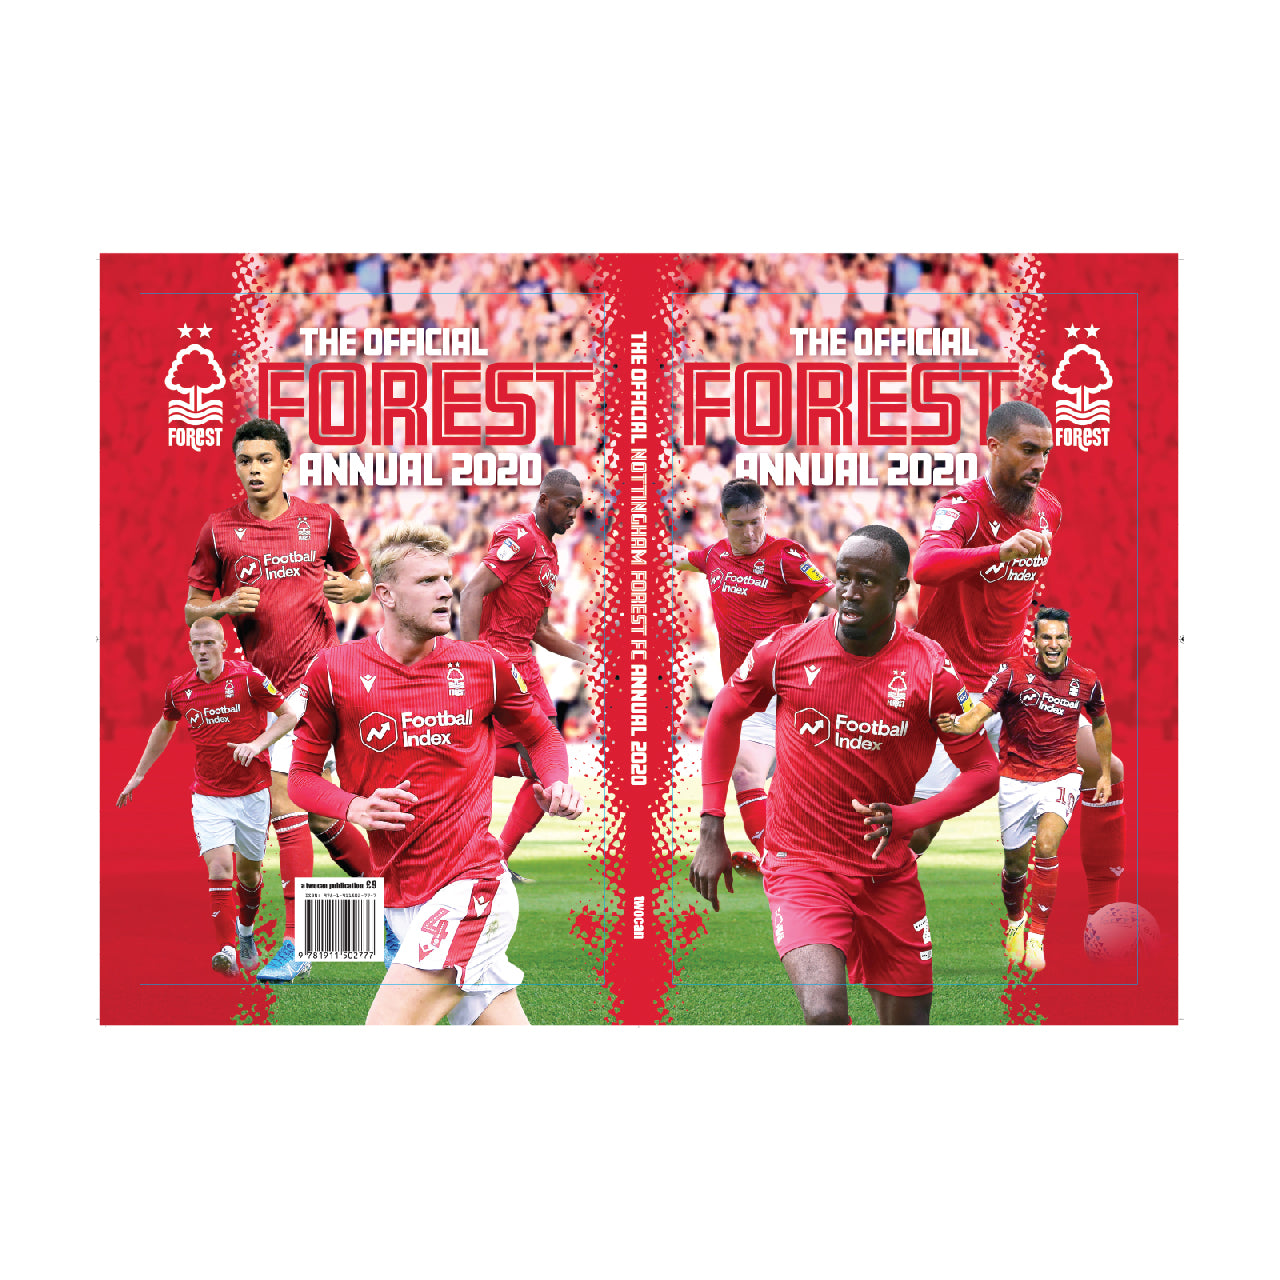 NFFC Annual 2020